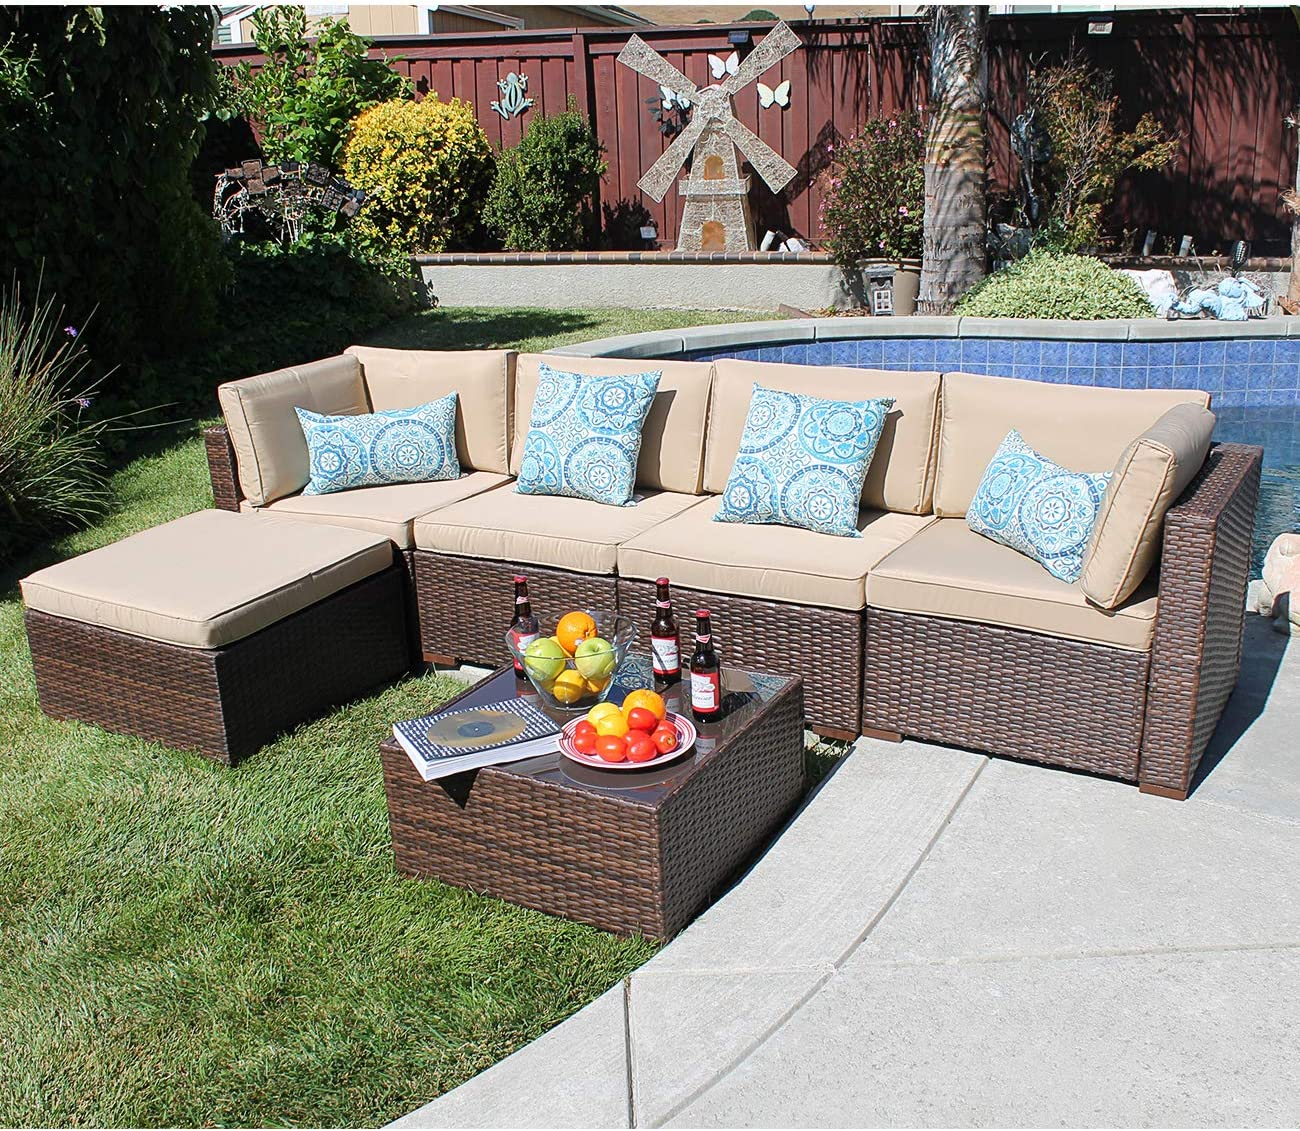 SUNSITT Outdoor Sectional 6 Piece Patio Furniture Set All Weather Brown Wicker Sofa Set with Ottoman, Beige